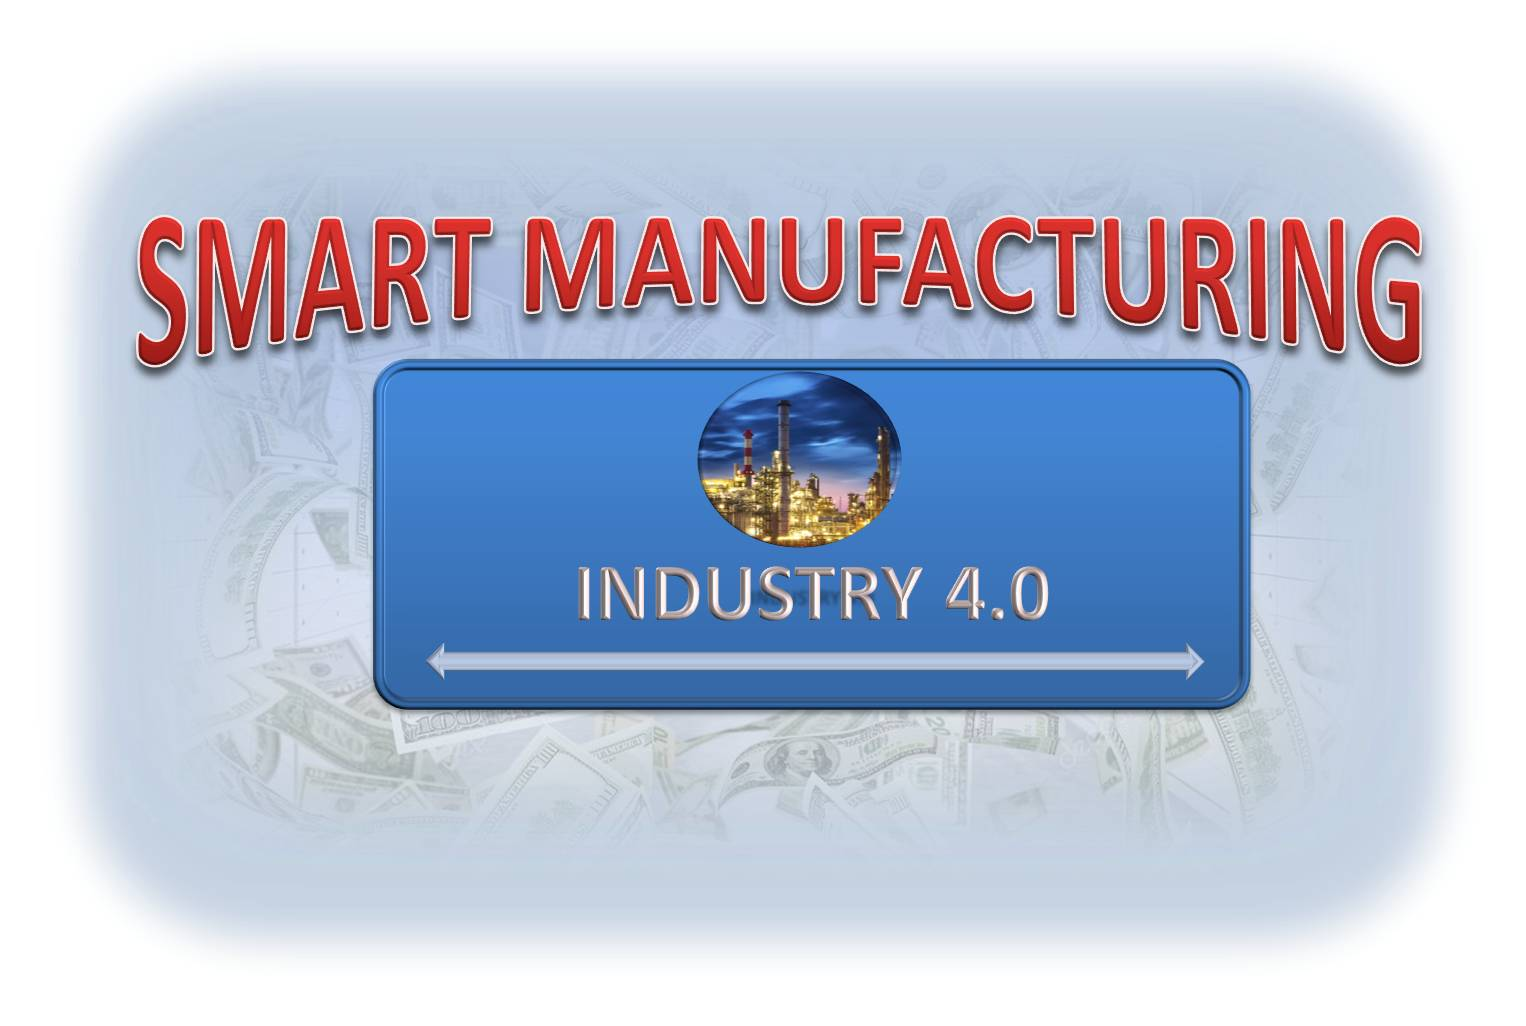 Smart Manufacturing project costs